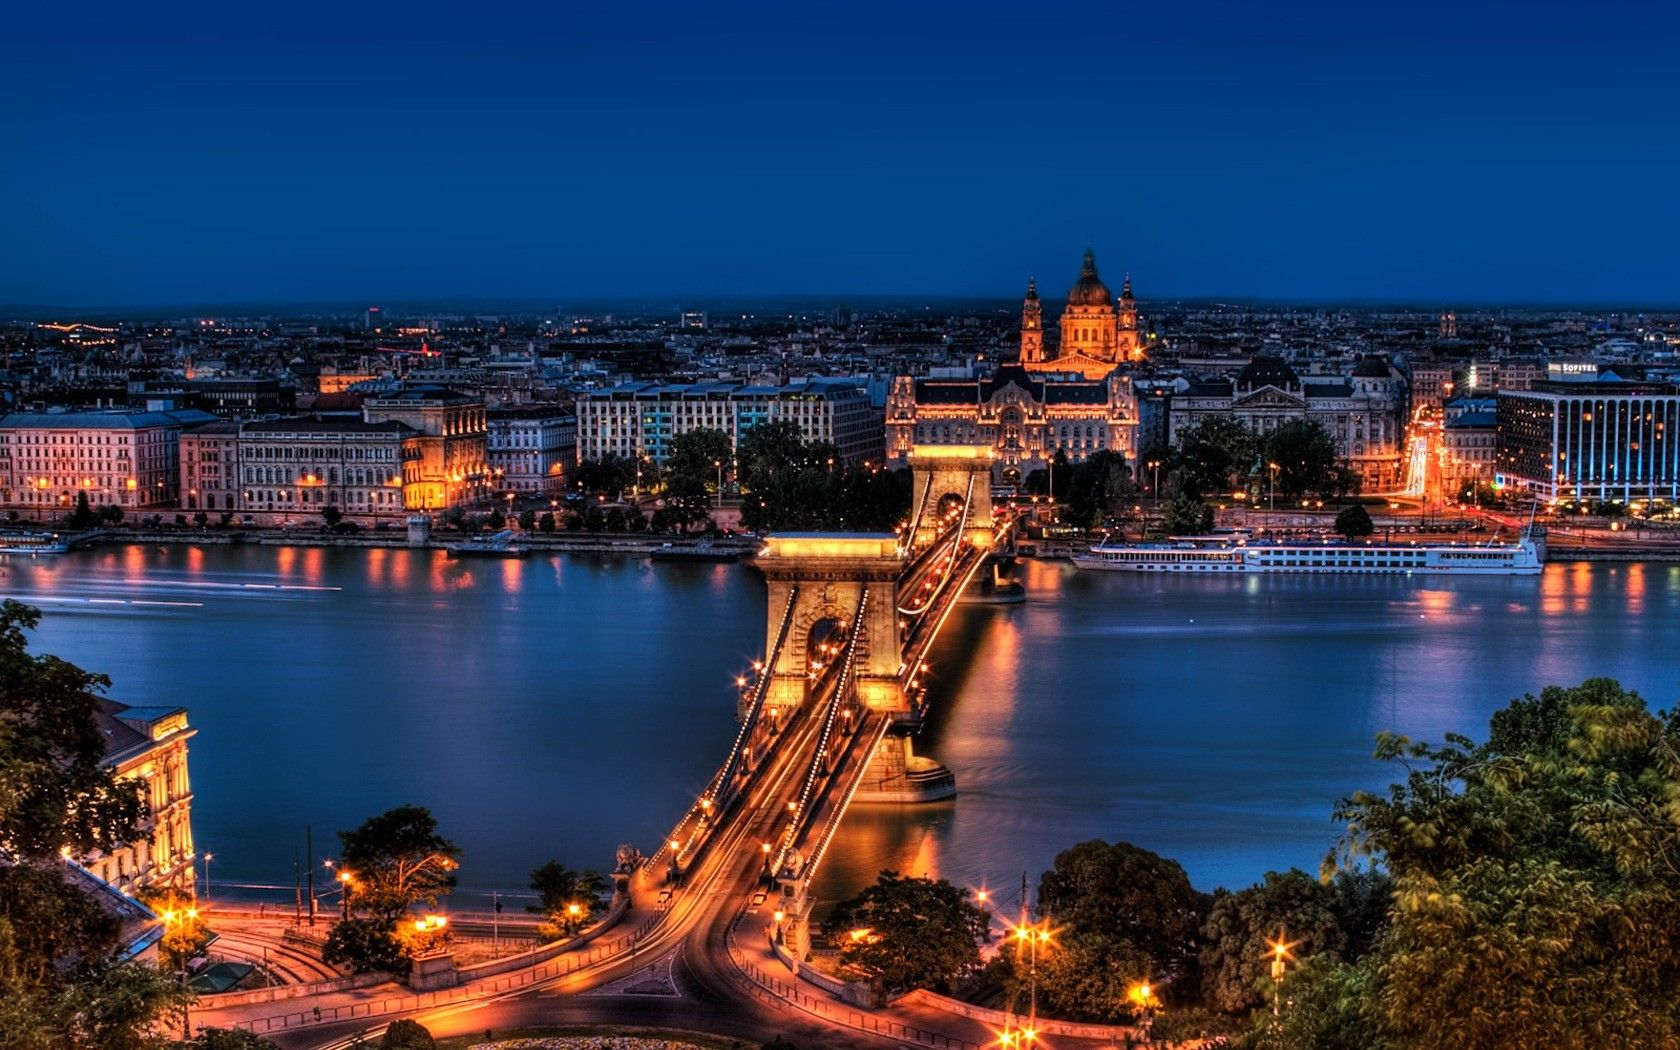 Széchenyi-Chain-Bridge-Night-view-Budapest-Hungary